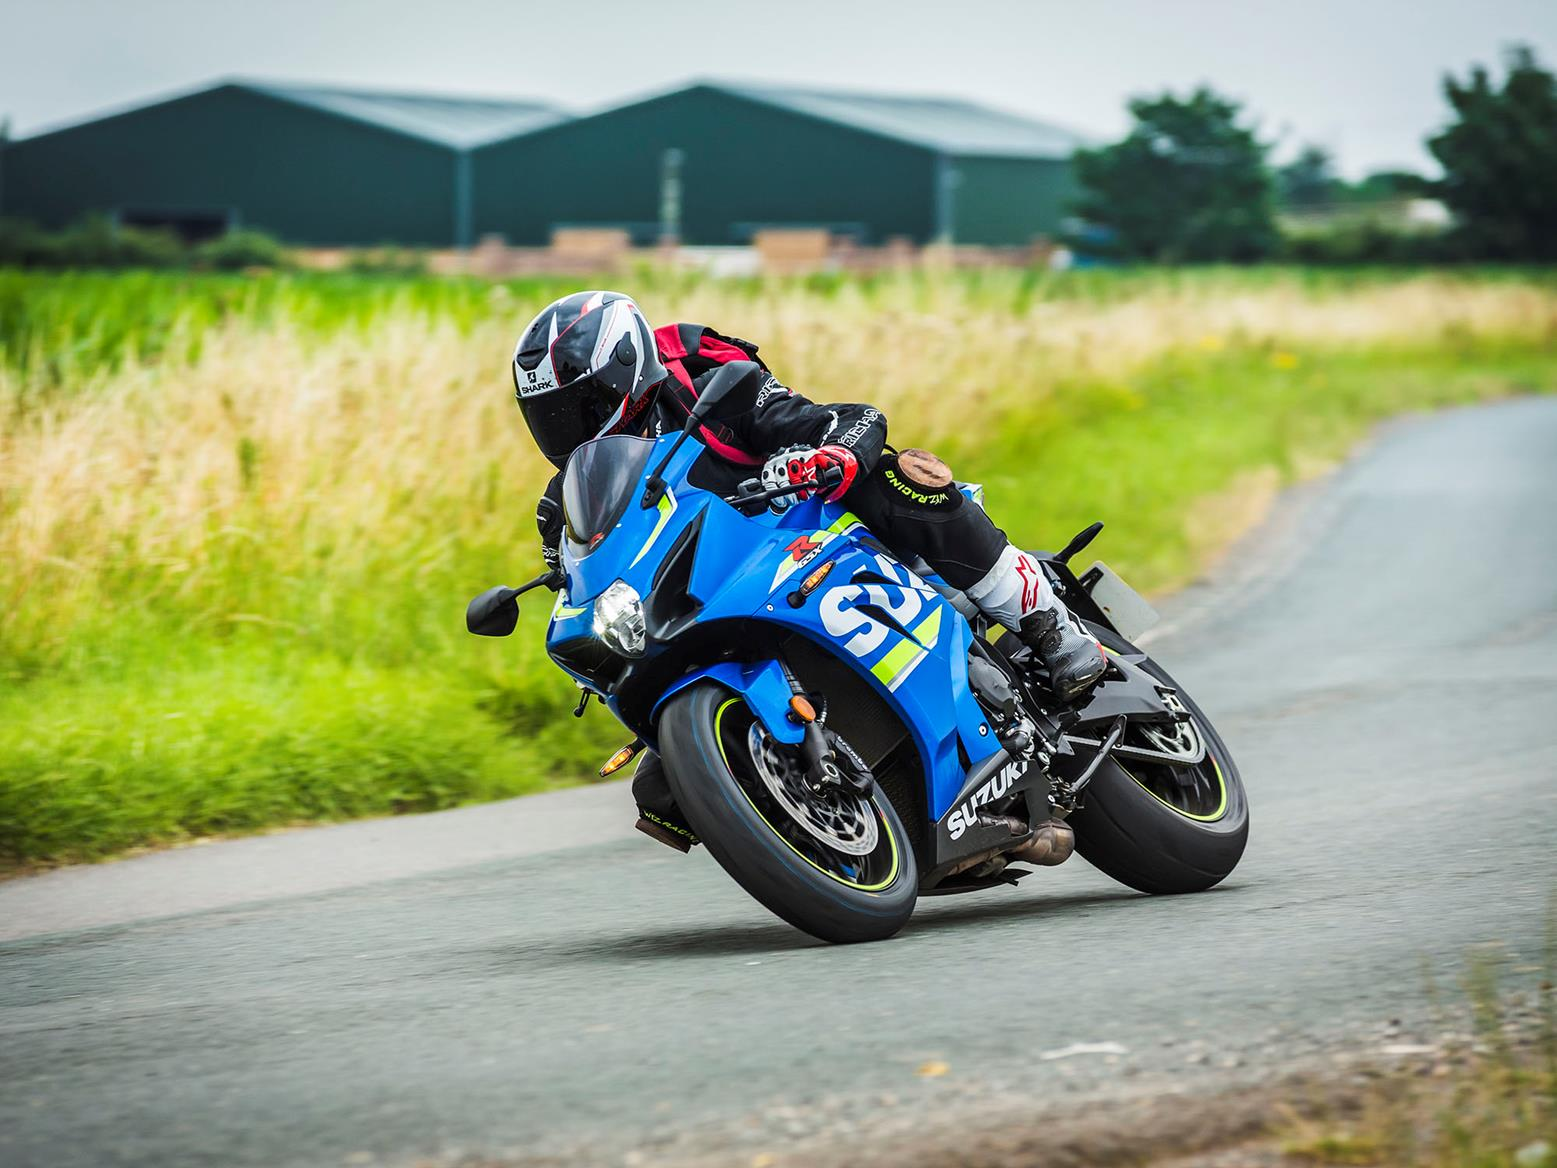 Suzuki GSX-R1000 turning right